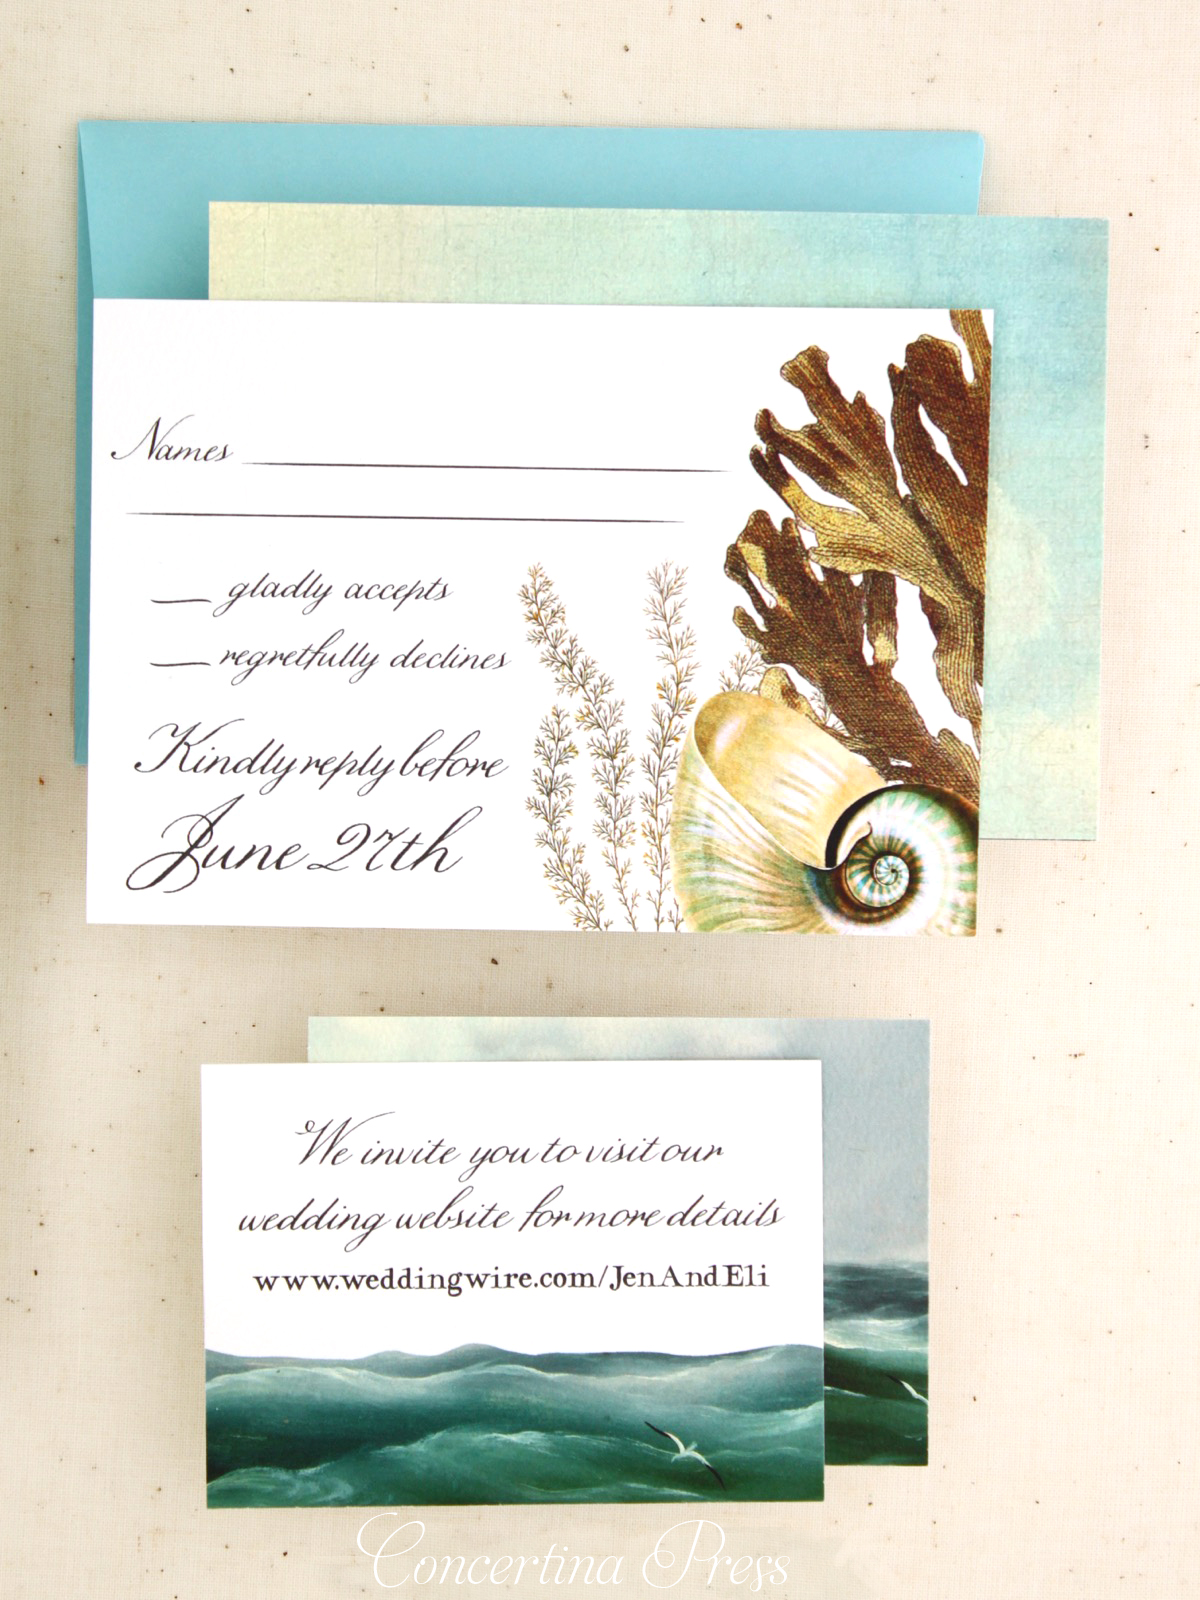 Nautical RSVP and website card from Concertina Press